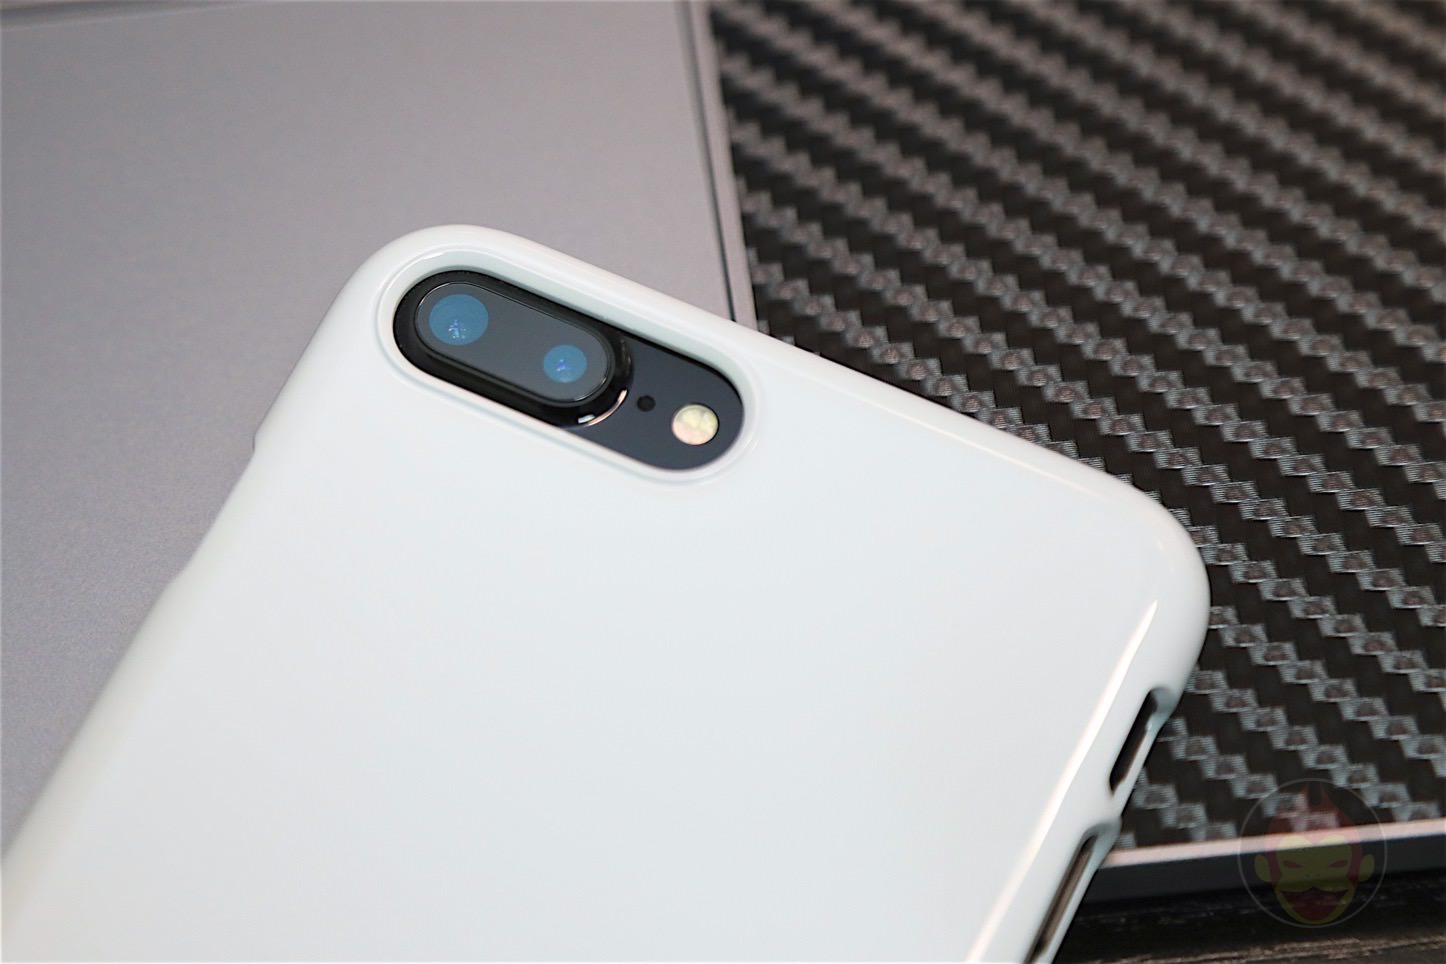 Spigen Jet White Case Review